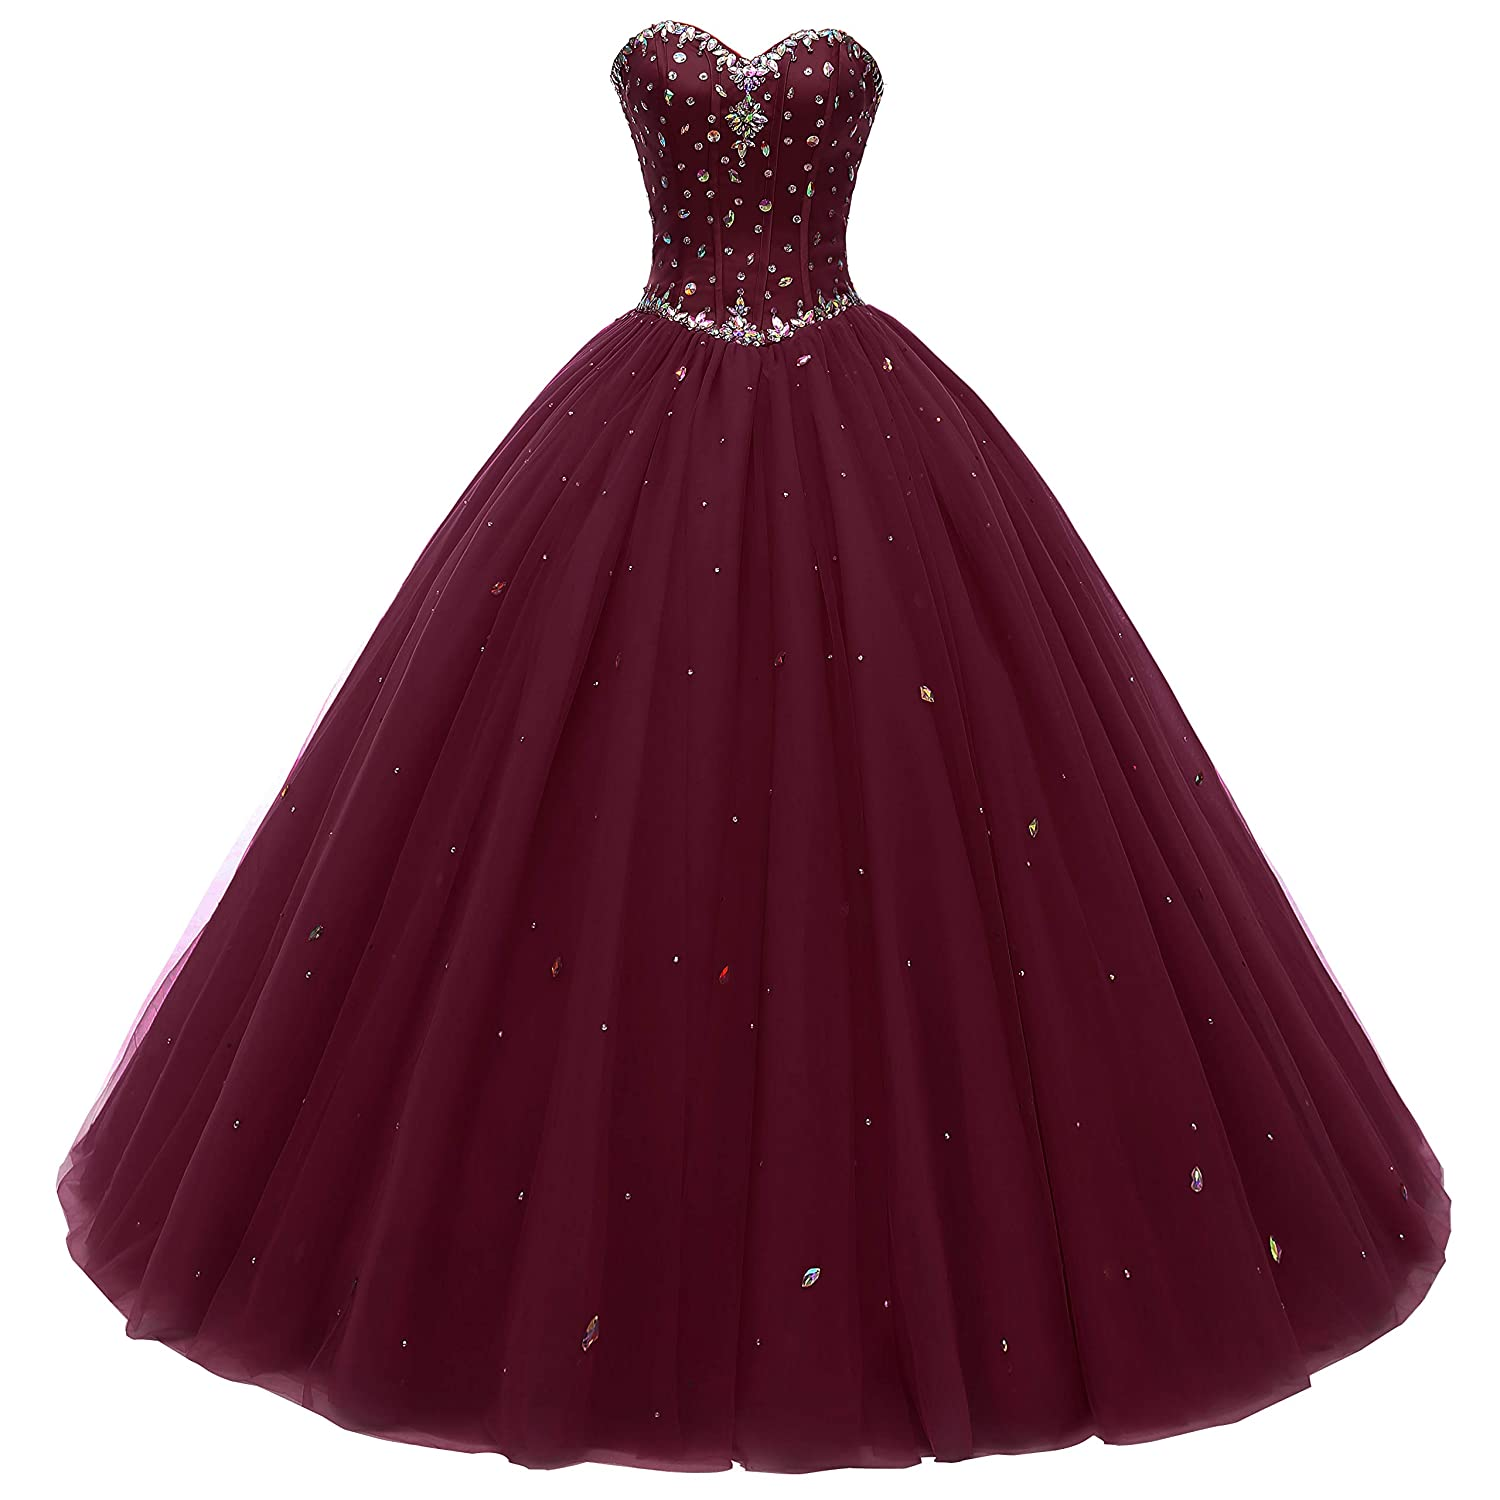 Beautyprom Women's Sweetheart Ball Gown Tulle Quinceanera Dresses Prom Dress